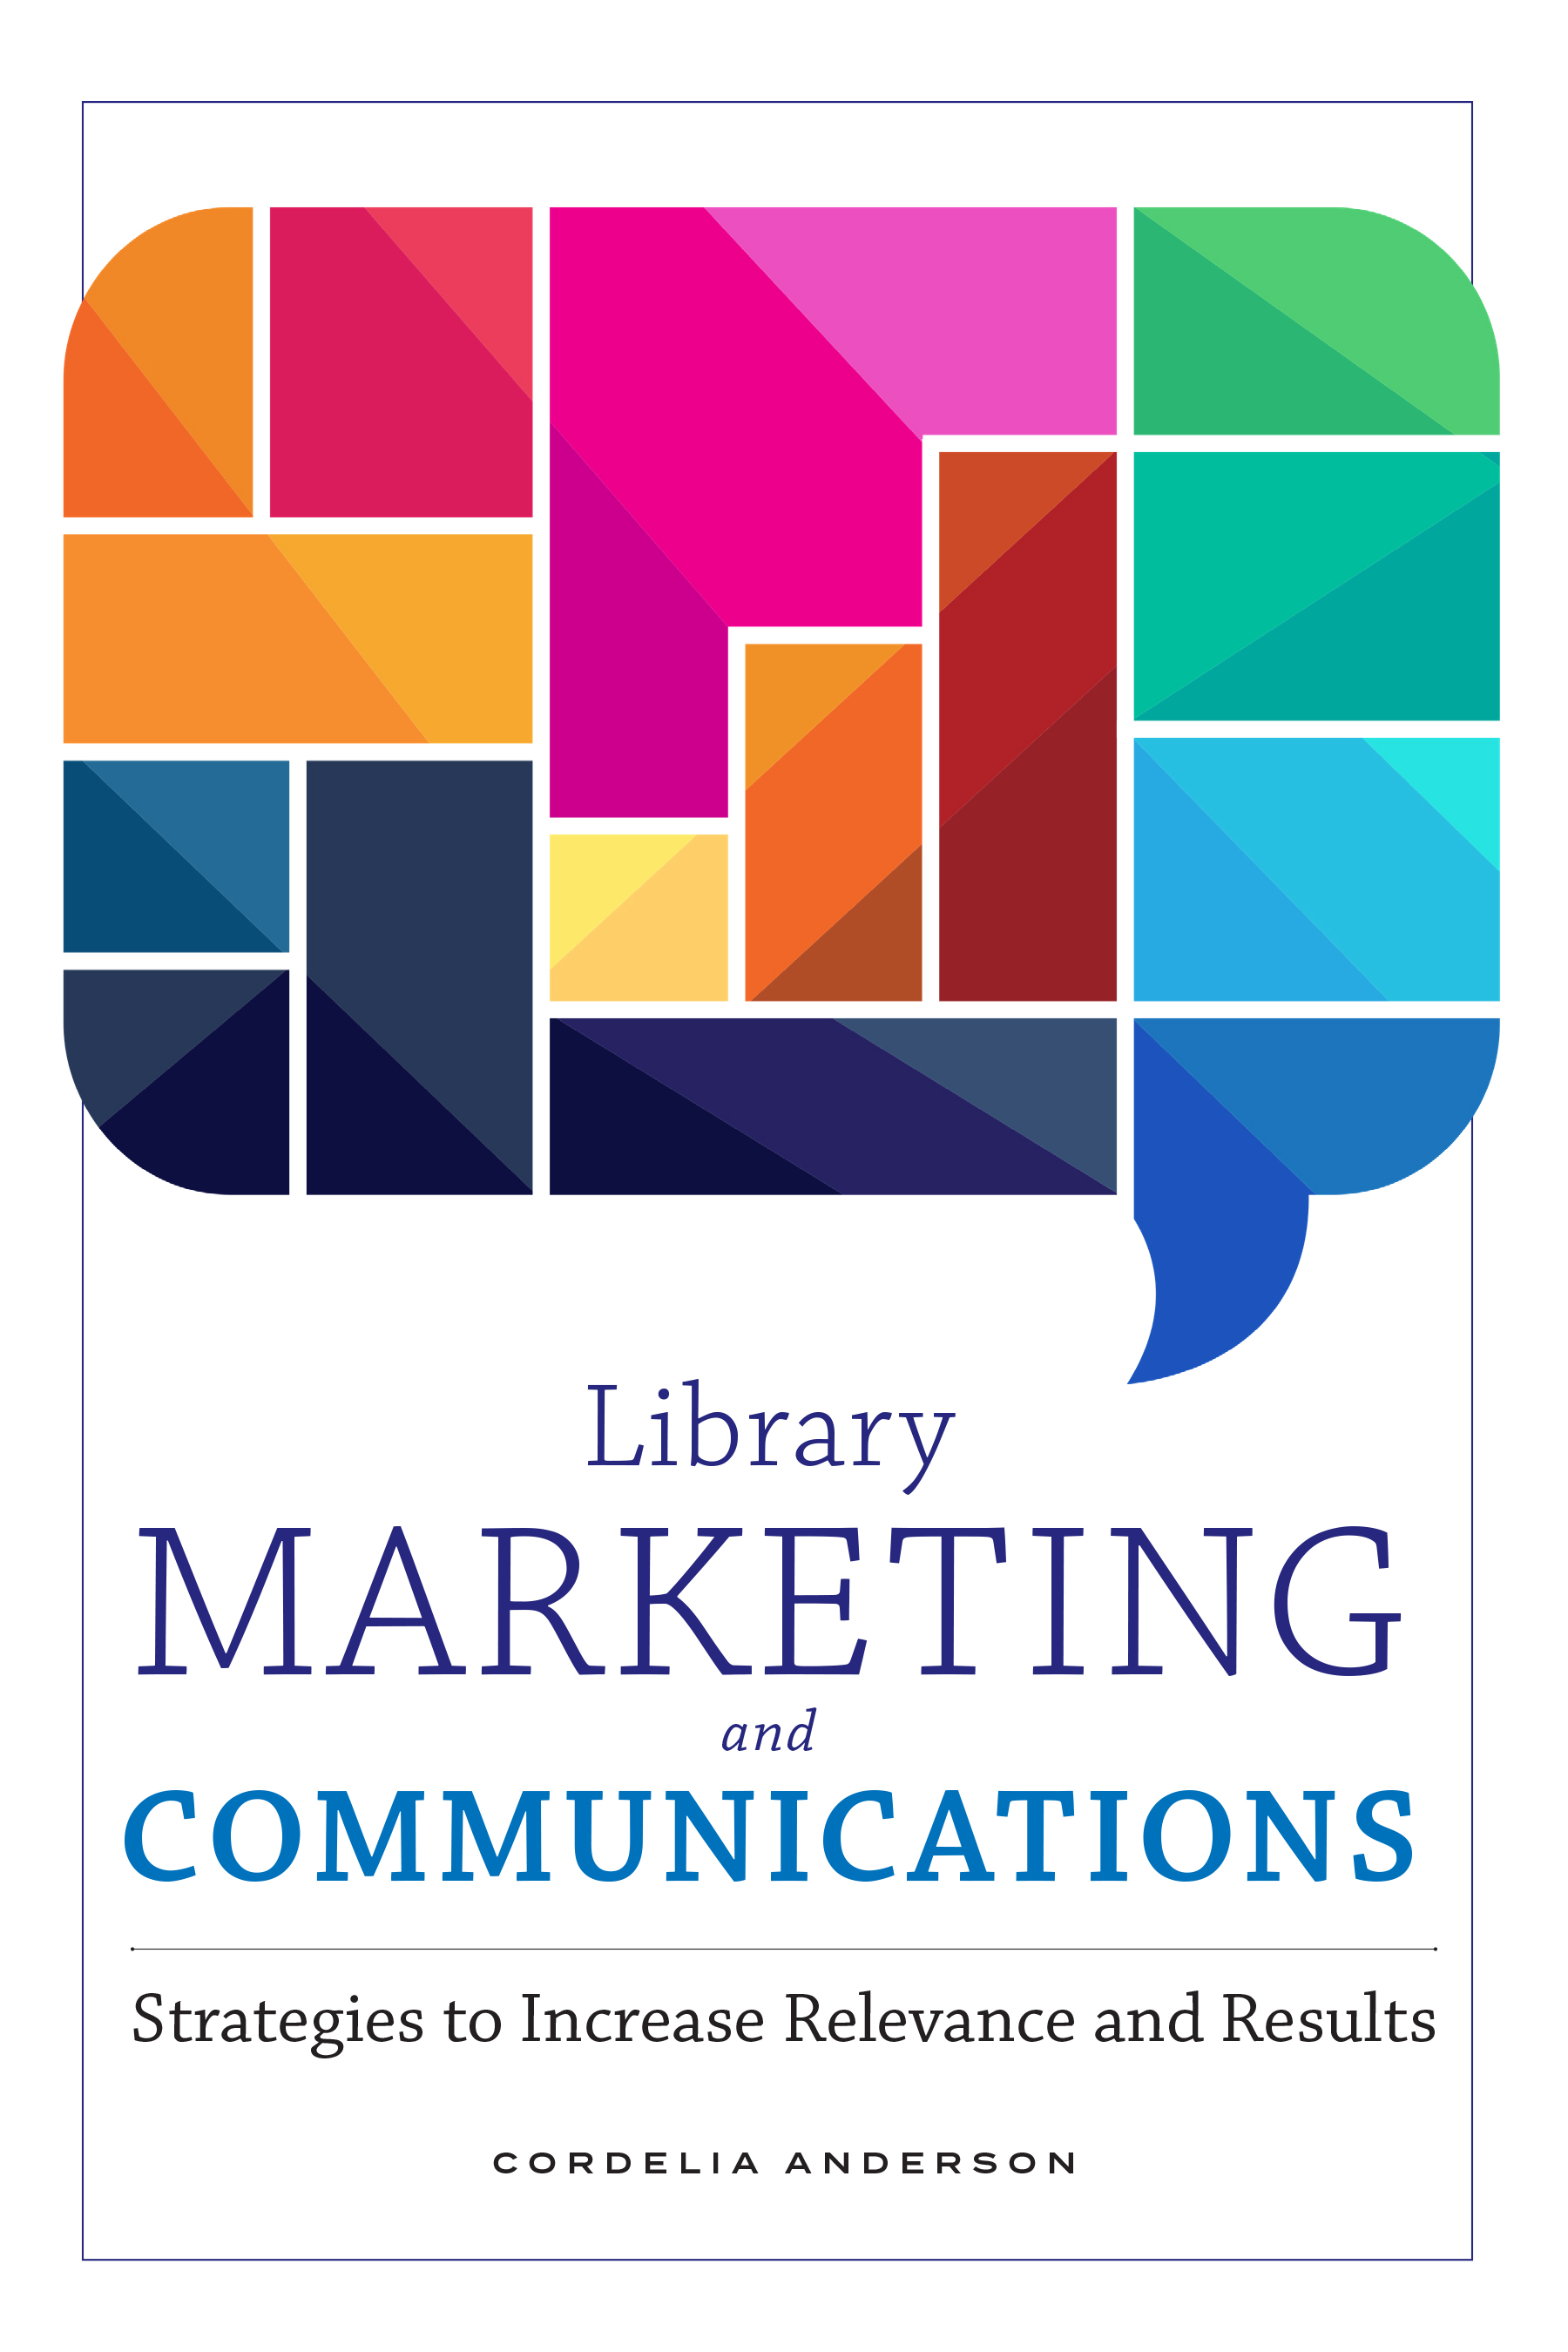 book cover for Library Marketing and Communications: Strategies to Increase Relevance and Results